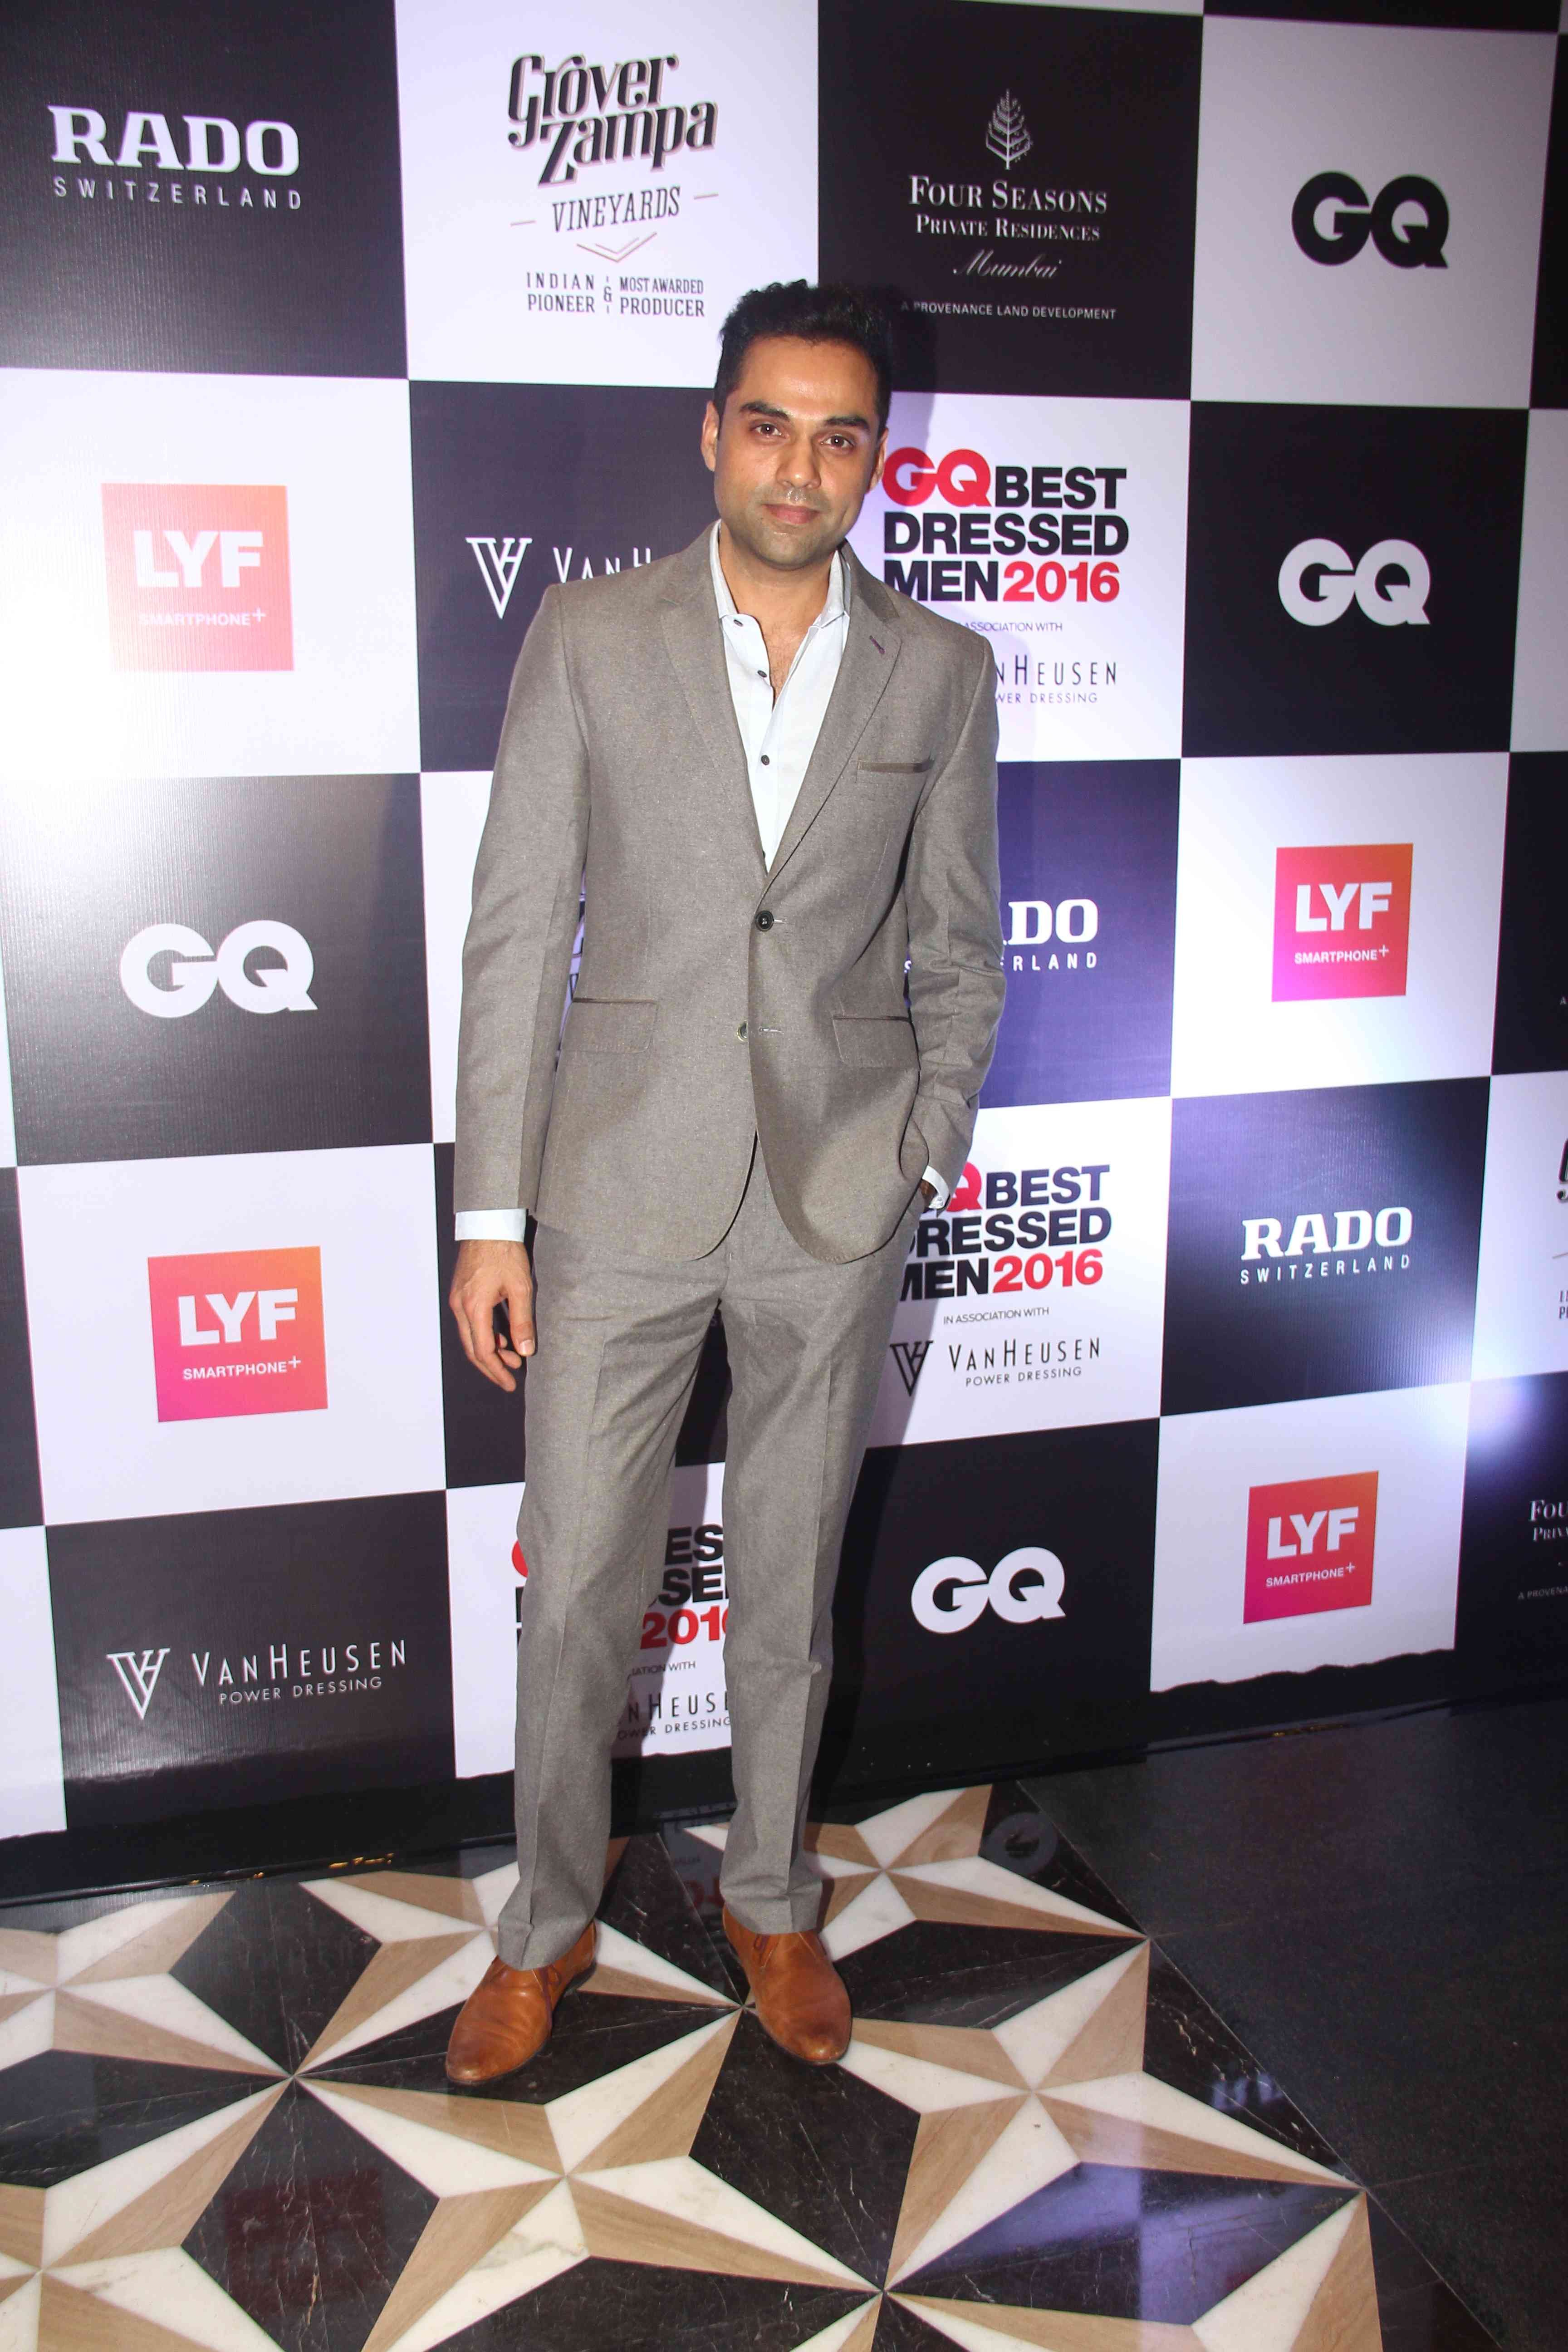 GQ Celebrates the Best-Dressed Men in India; Partners 70 EMG For Execution